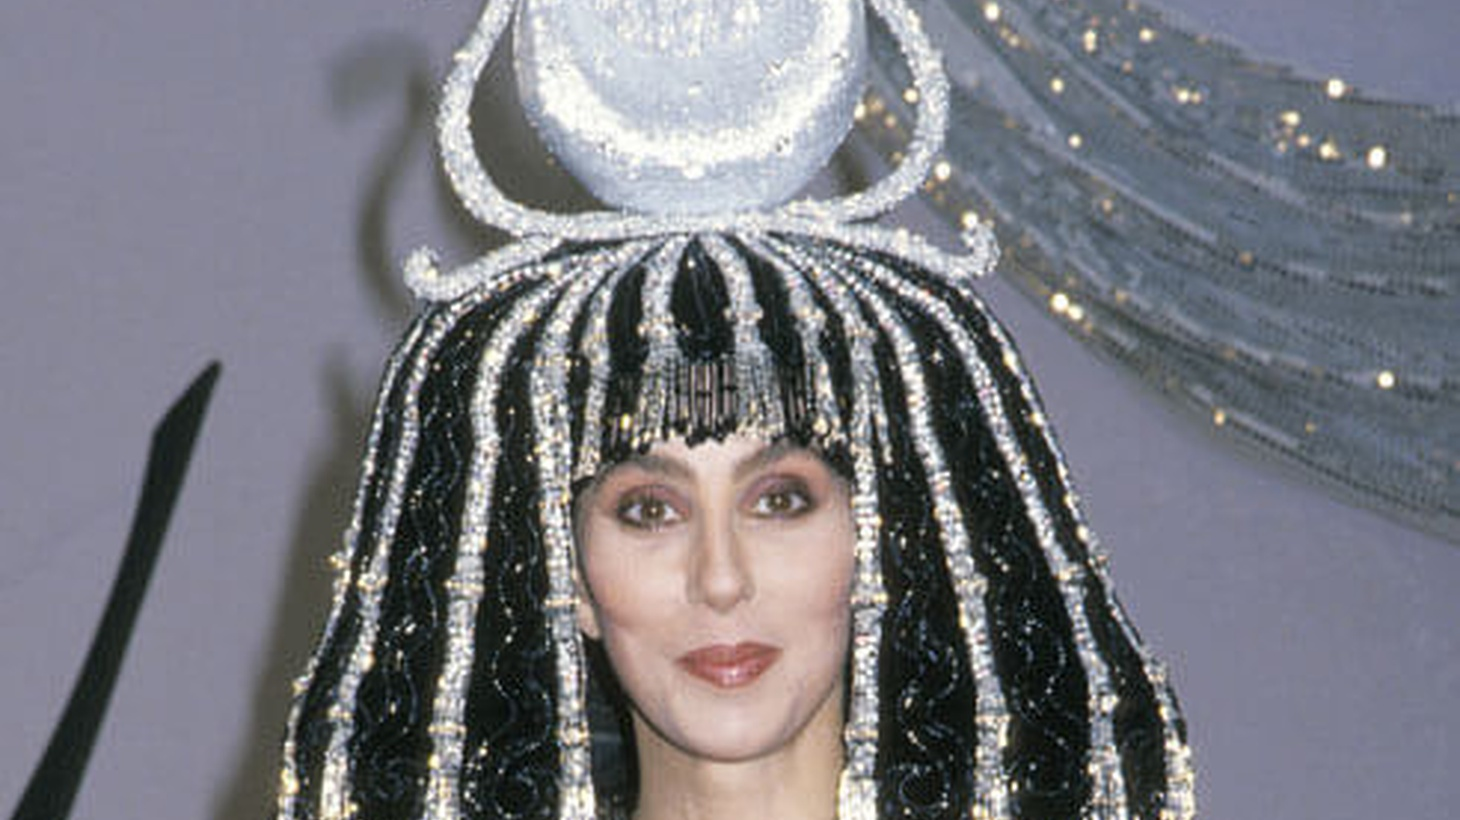 At a 1988 Halloween party in Century City, Cher channeled Cleopatra with a wig-headpiece hybrid that screamed statuesque